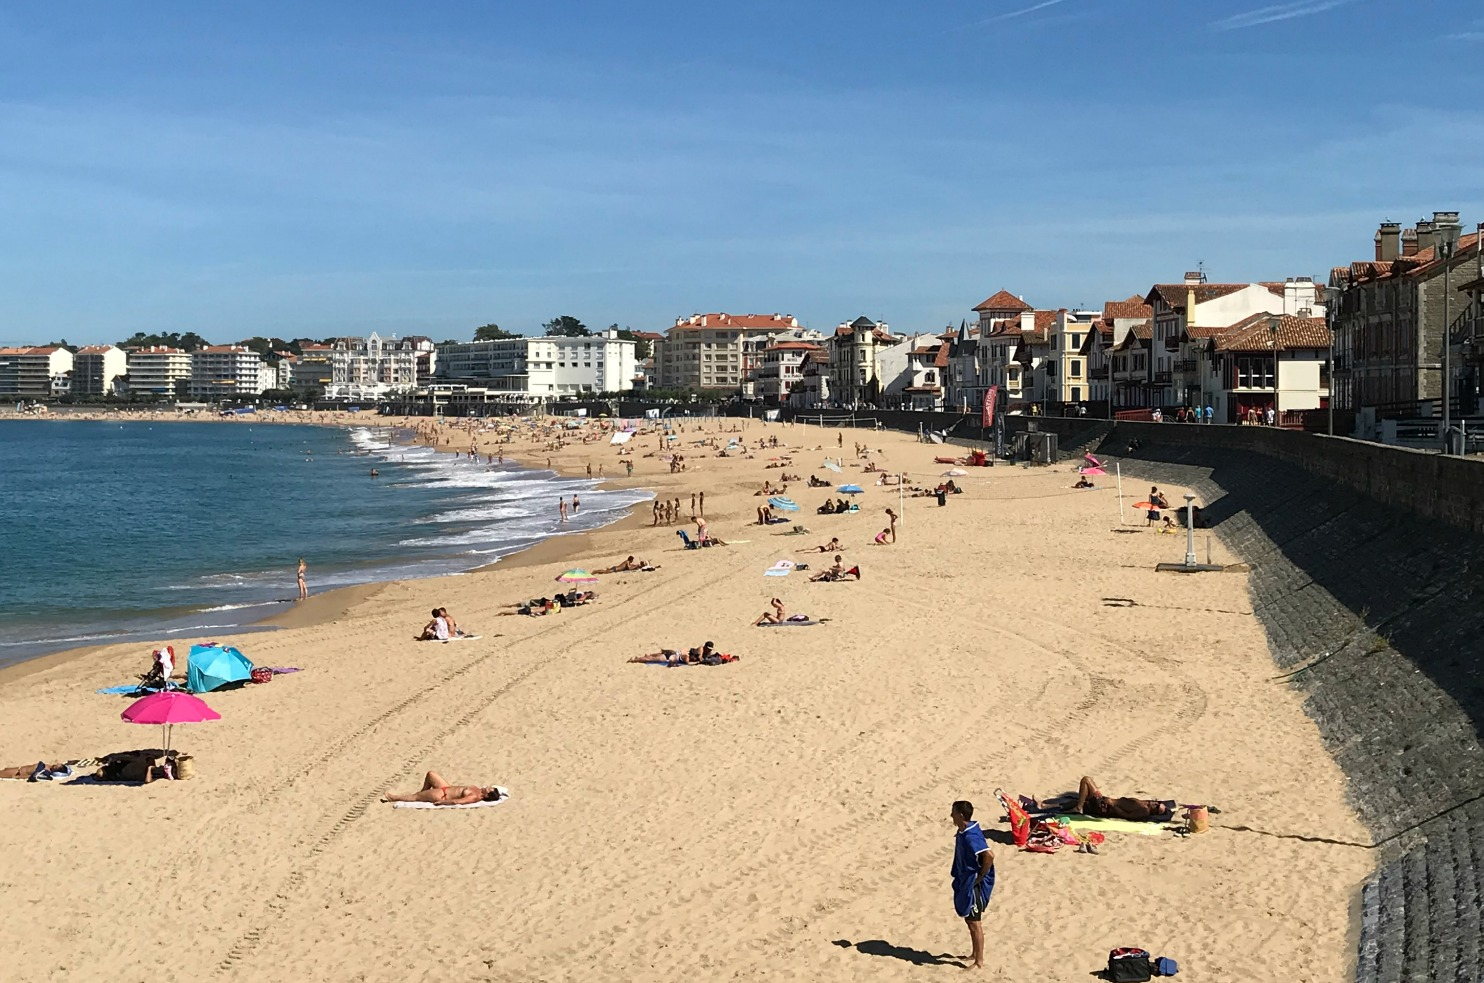 Enjoying September sun on St-Jean-de-Luz beach